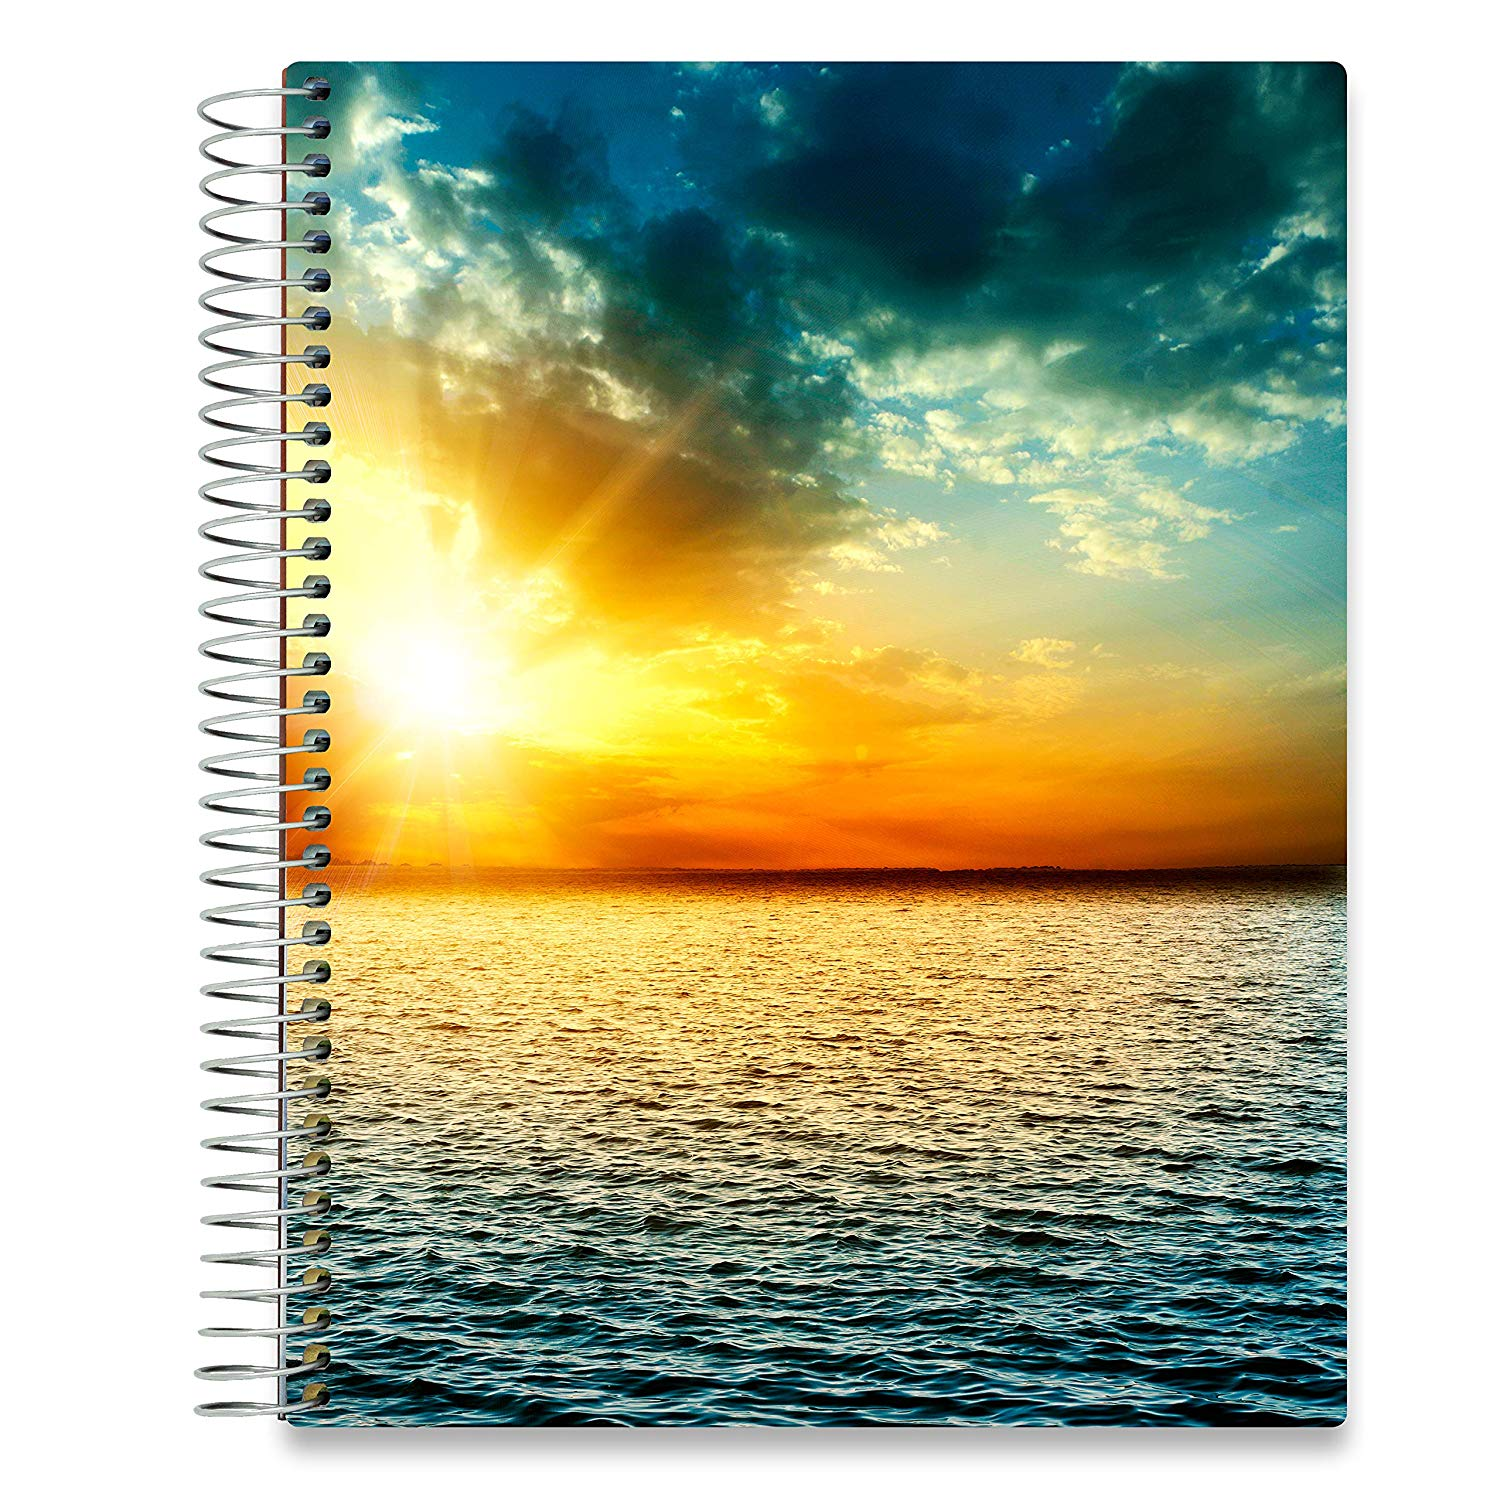 NEW: April 2020-2021 Planner - 8.5x11 - Ocean Sunset-Office Product-Tools4Wisdom